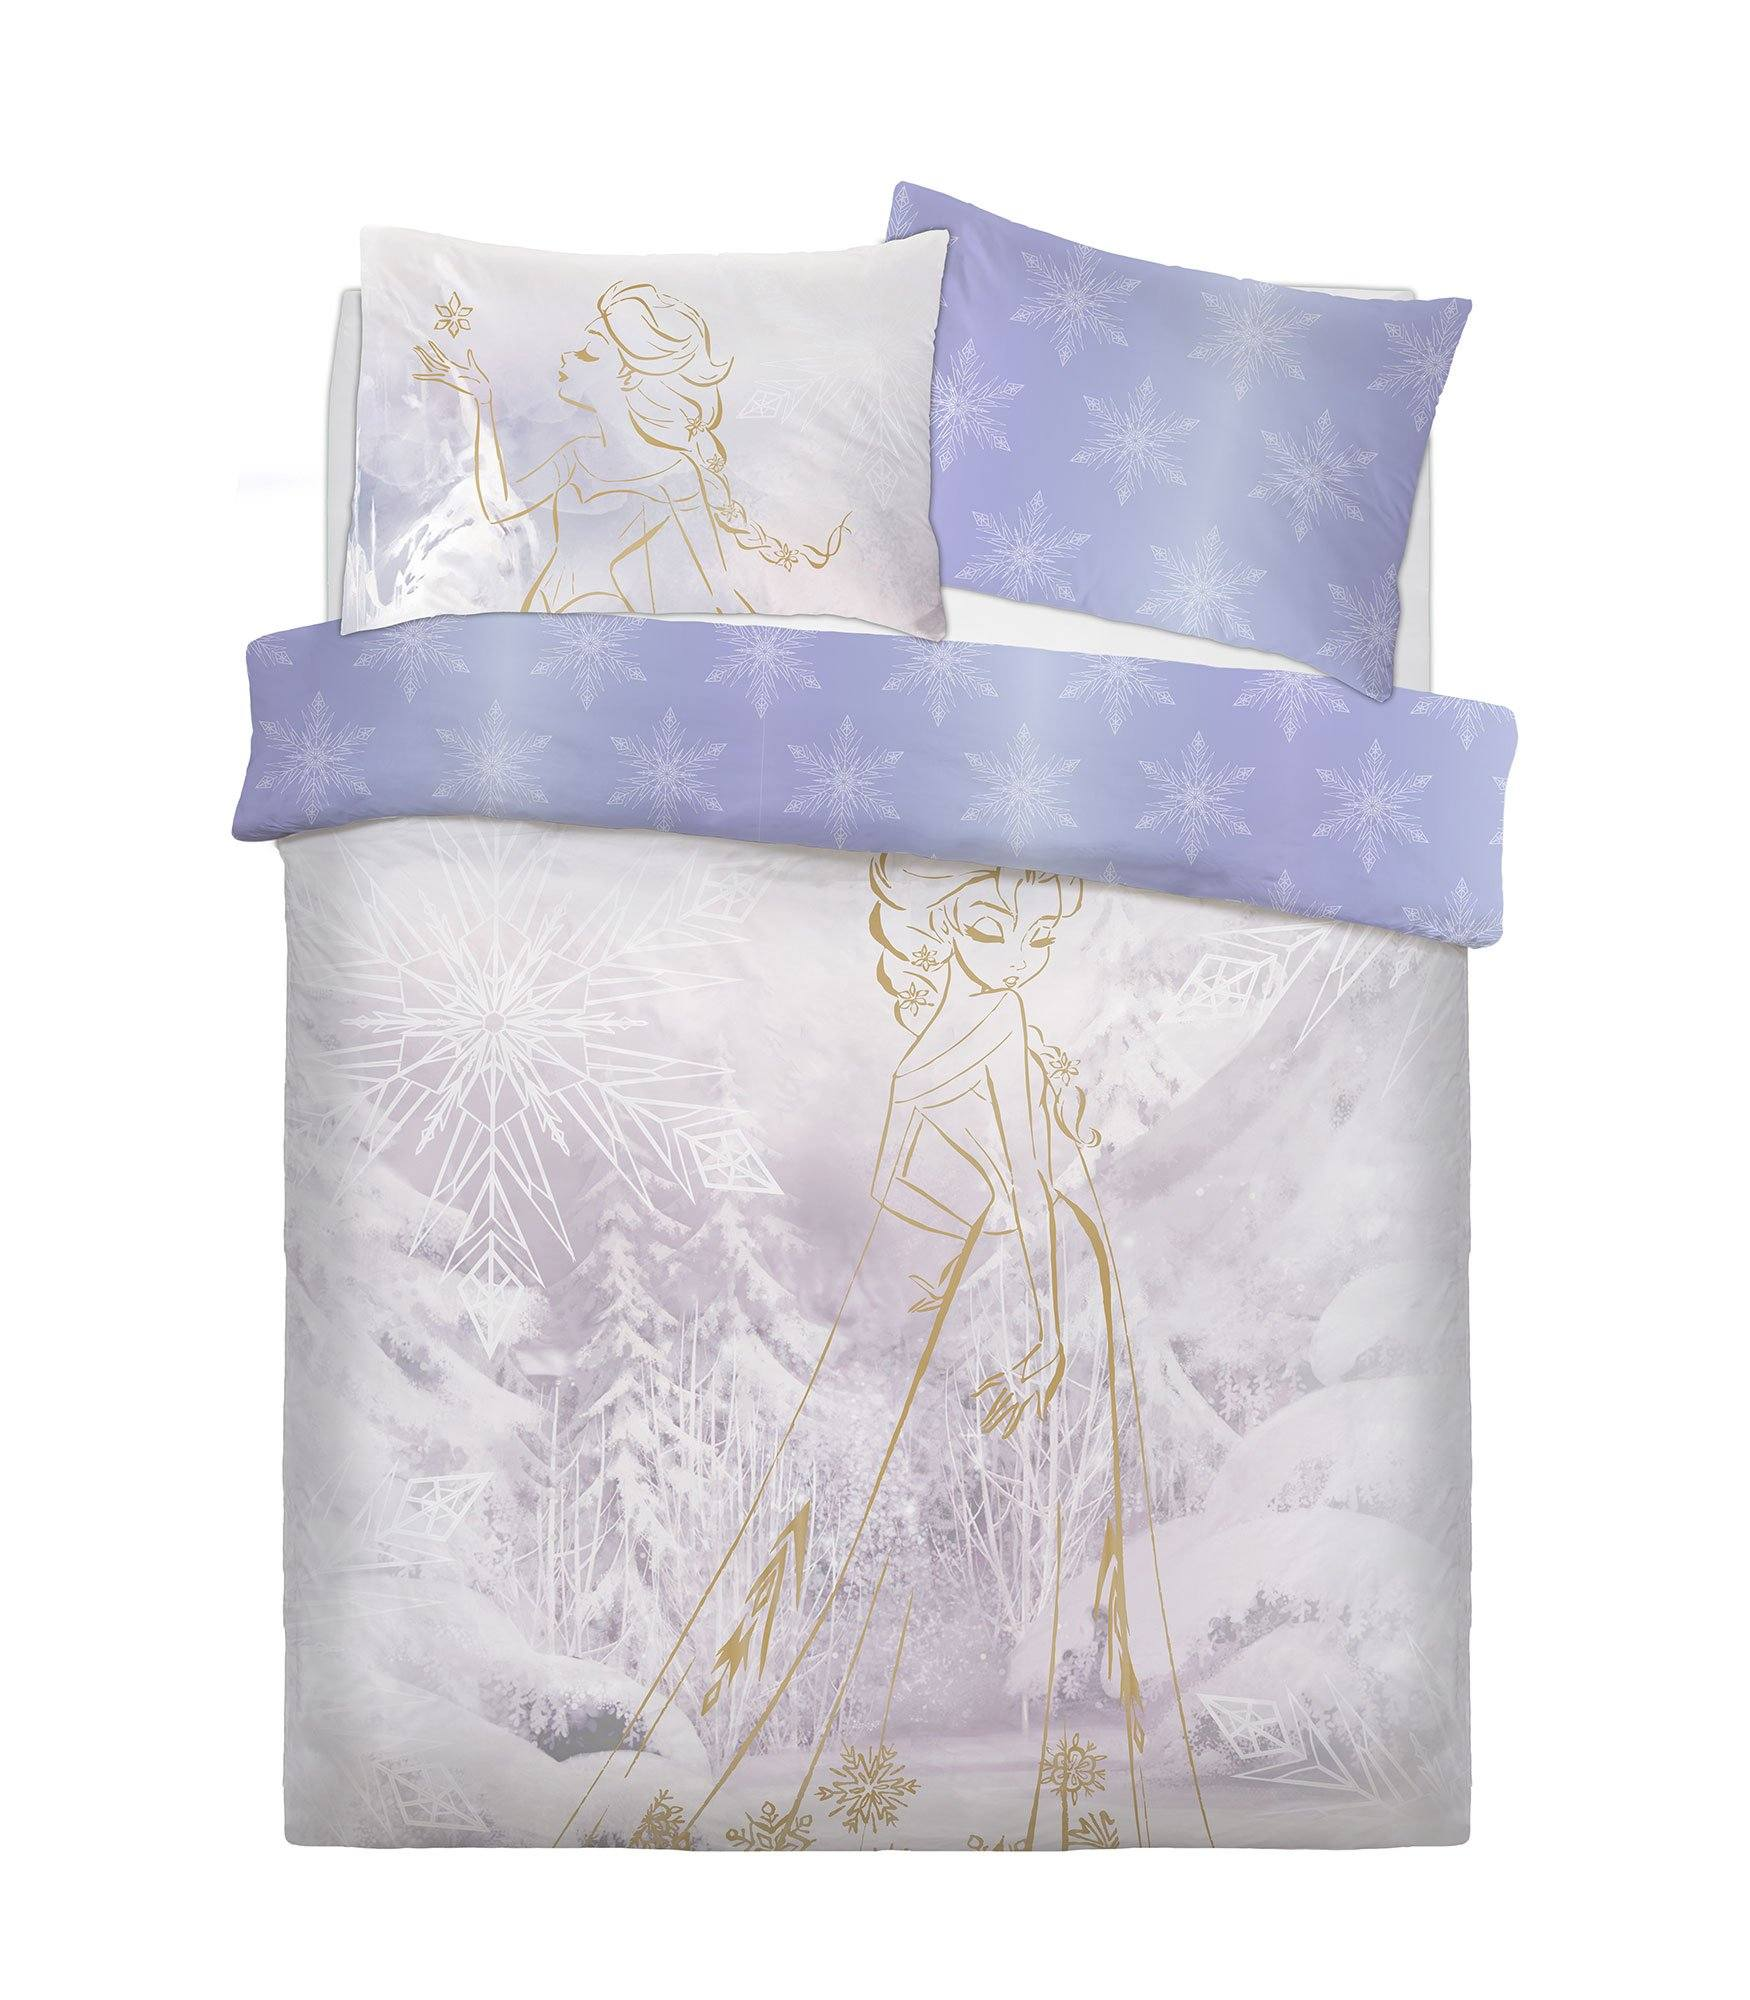 Frozen Double Bedding Bedding Cool Clobber Limited